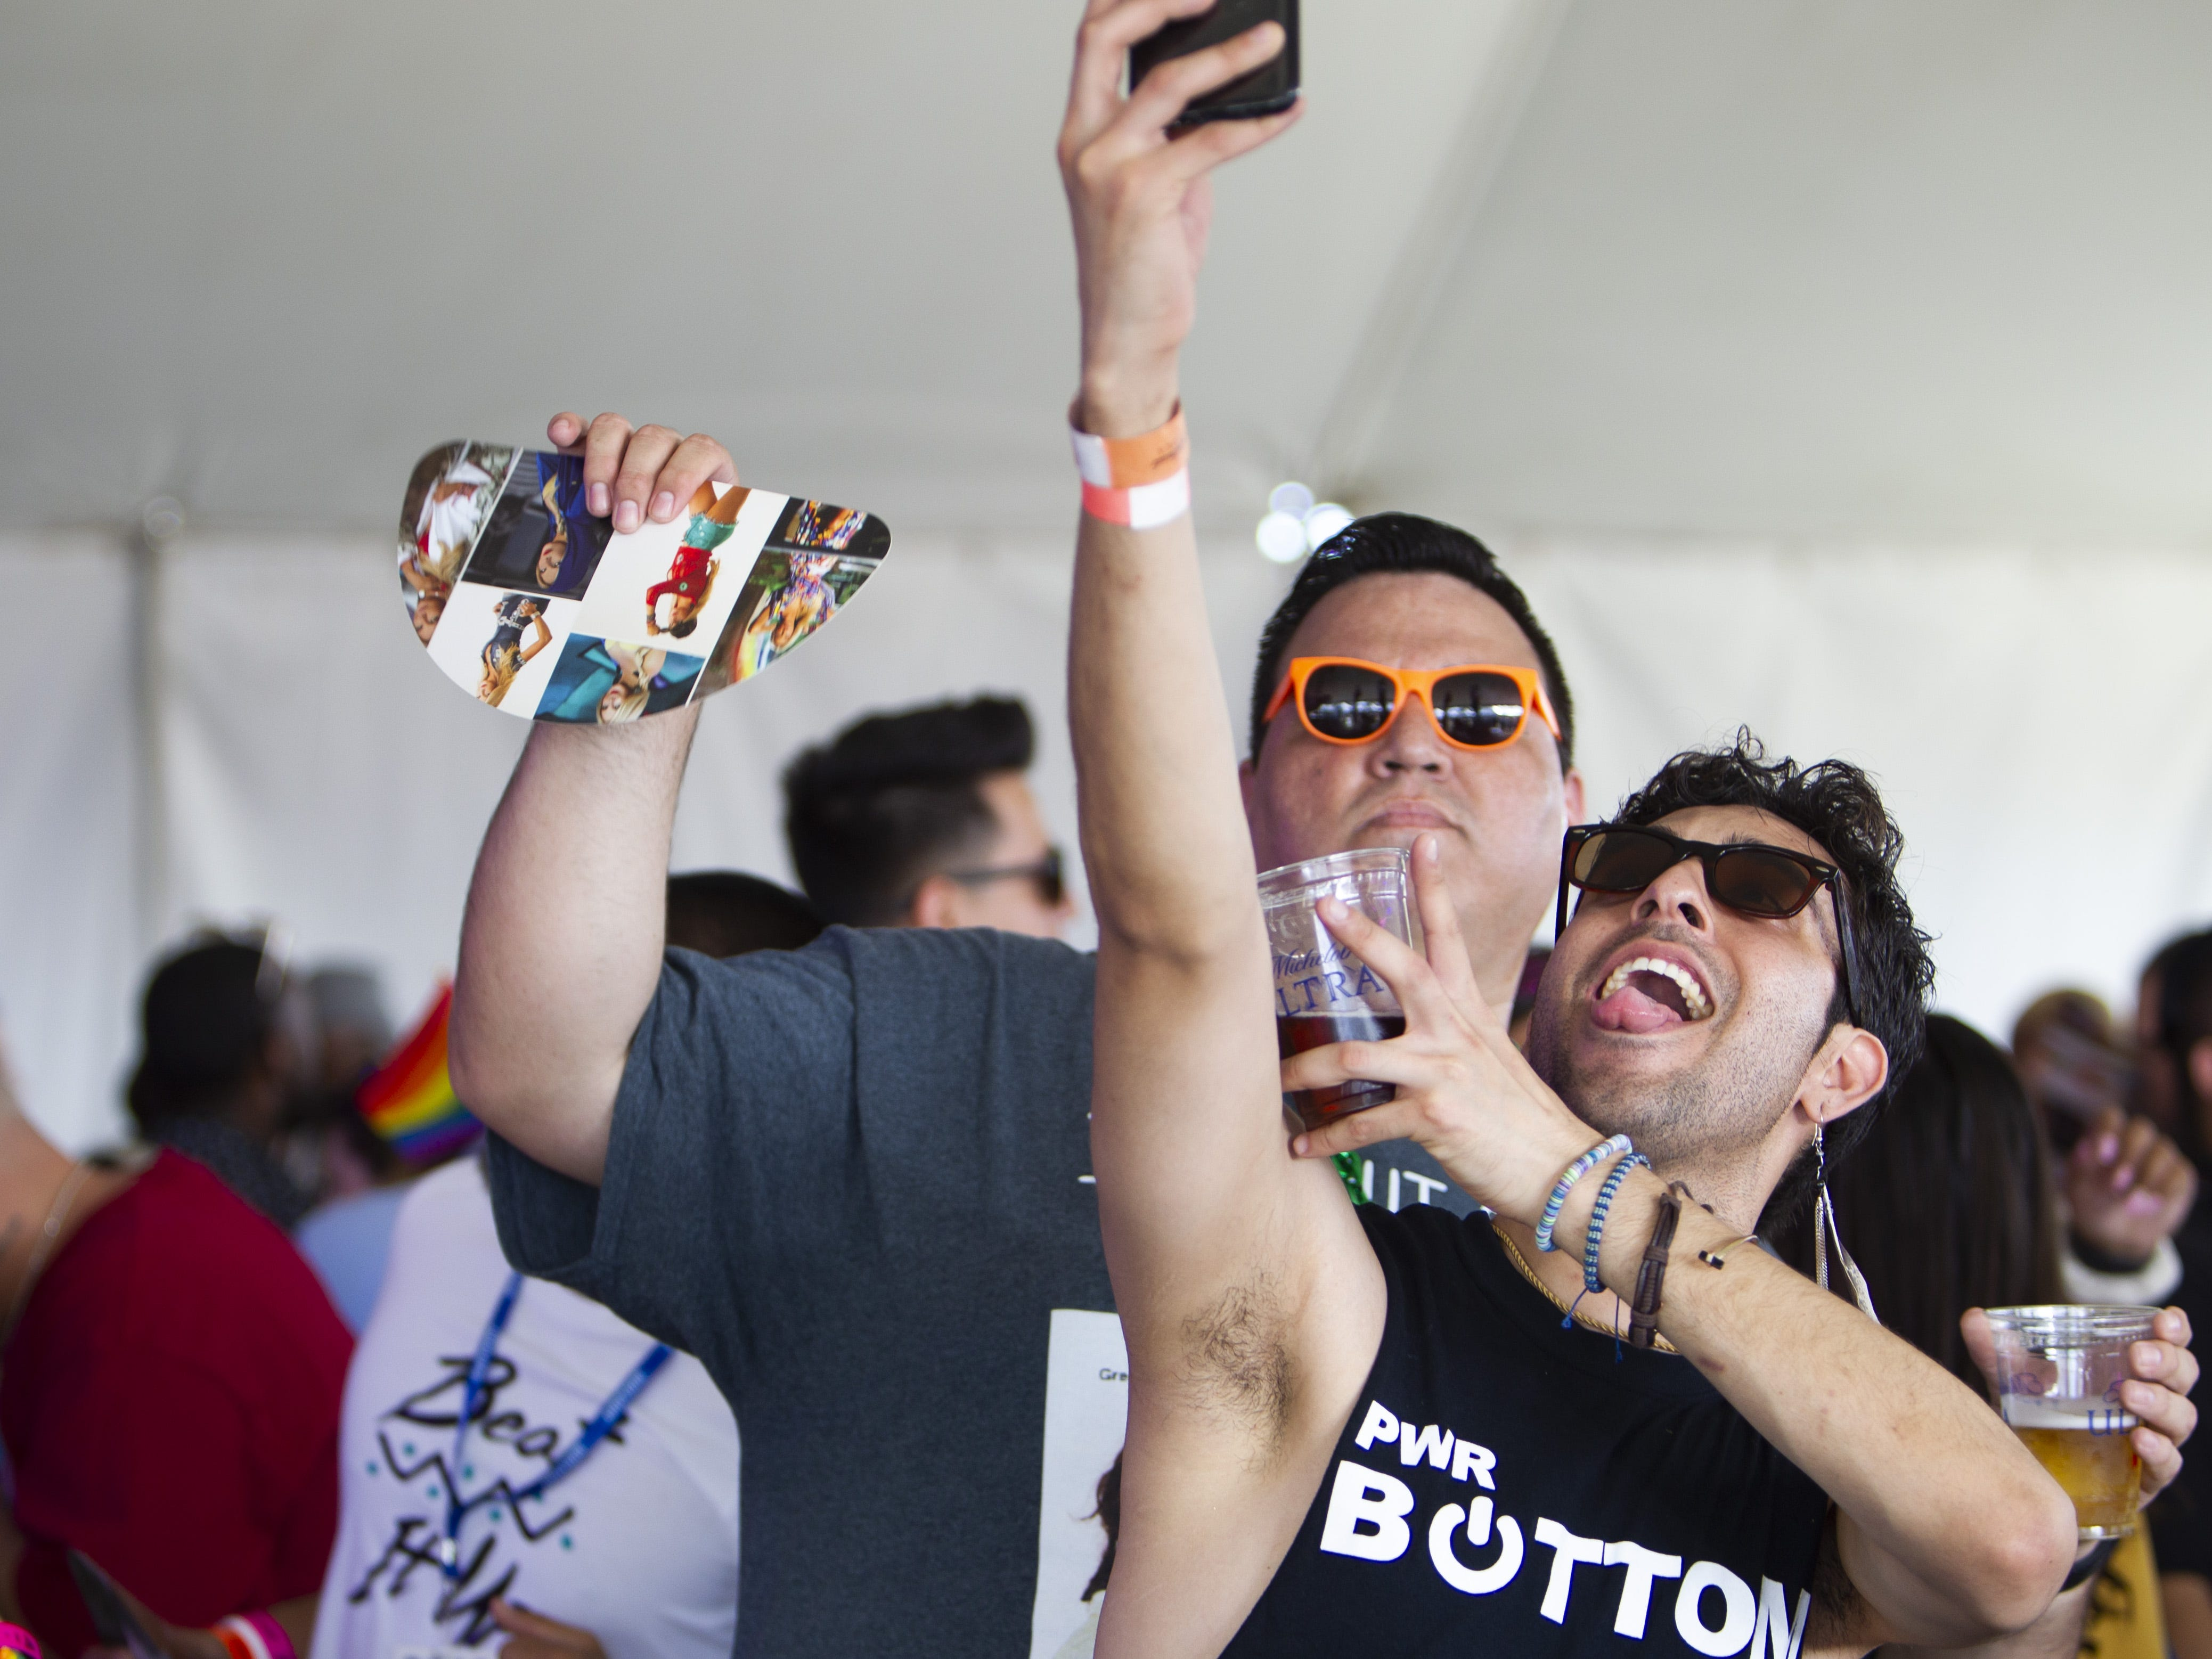 Eric Balderas, left, and Carlos Rodriguez take a selfie together during Phoenix Pride at Steele Indian School Park on Saturday, April 6, 2019.